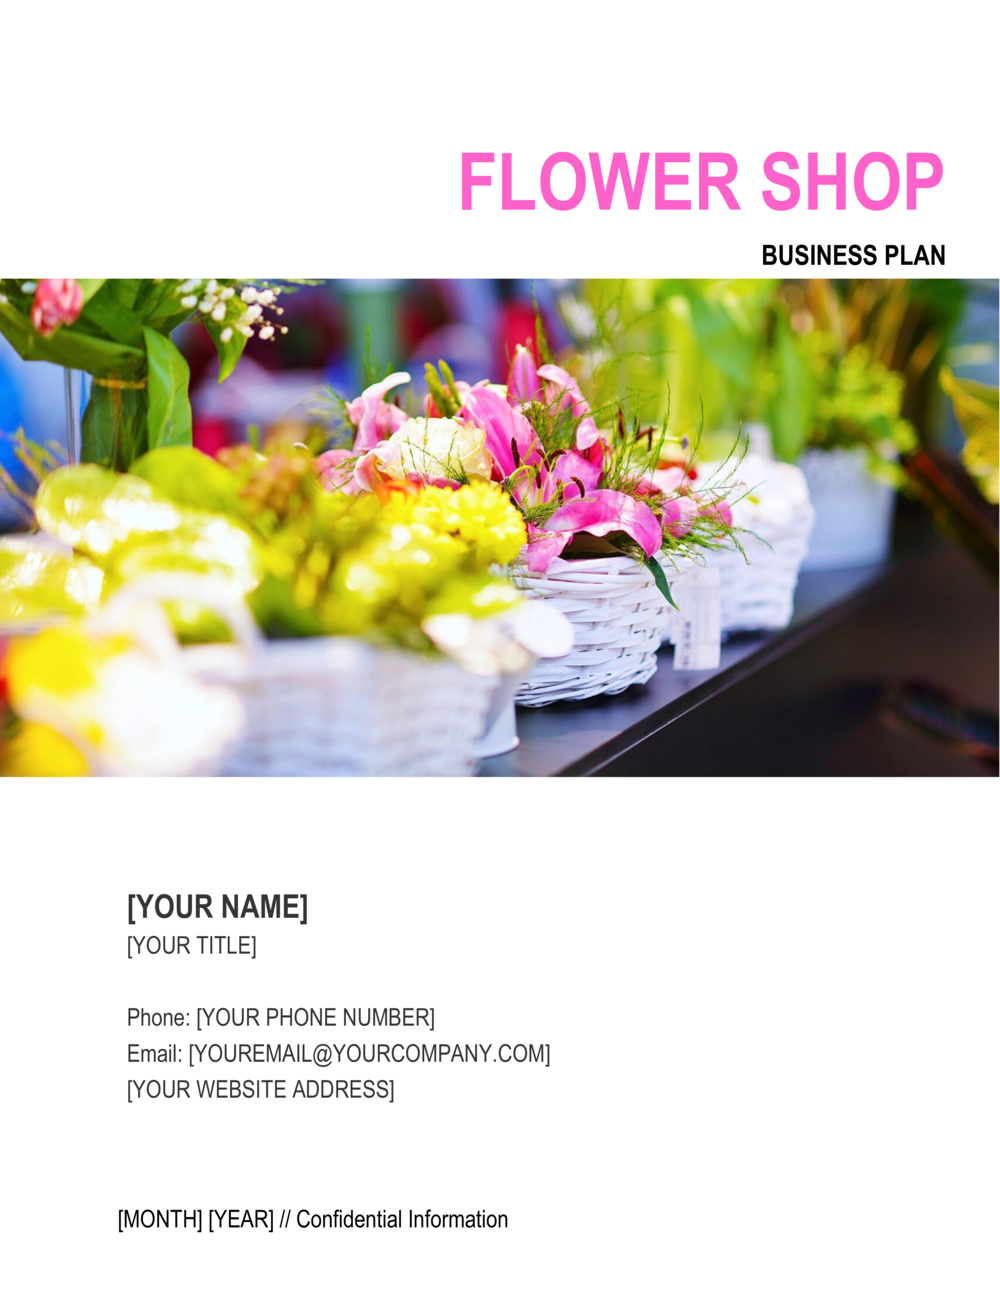 Business-in-a-Box's Flower Shop Business Plan 3 Template